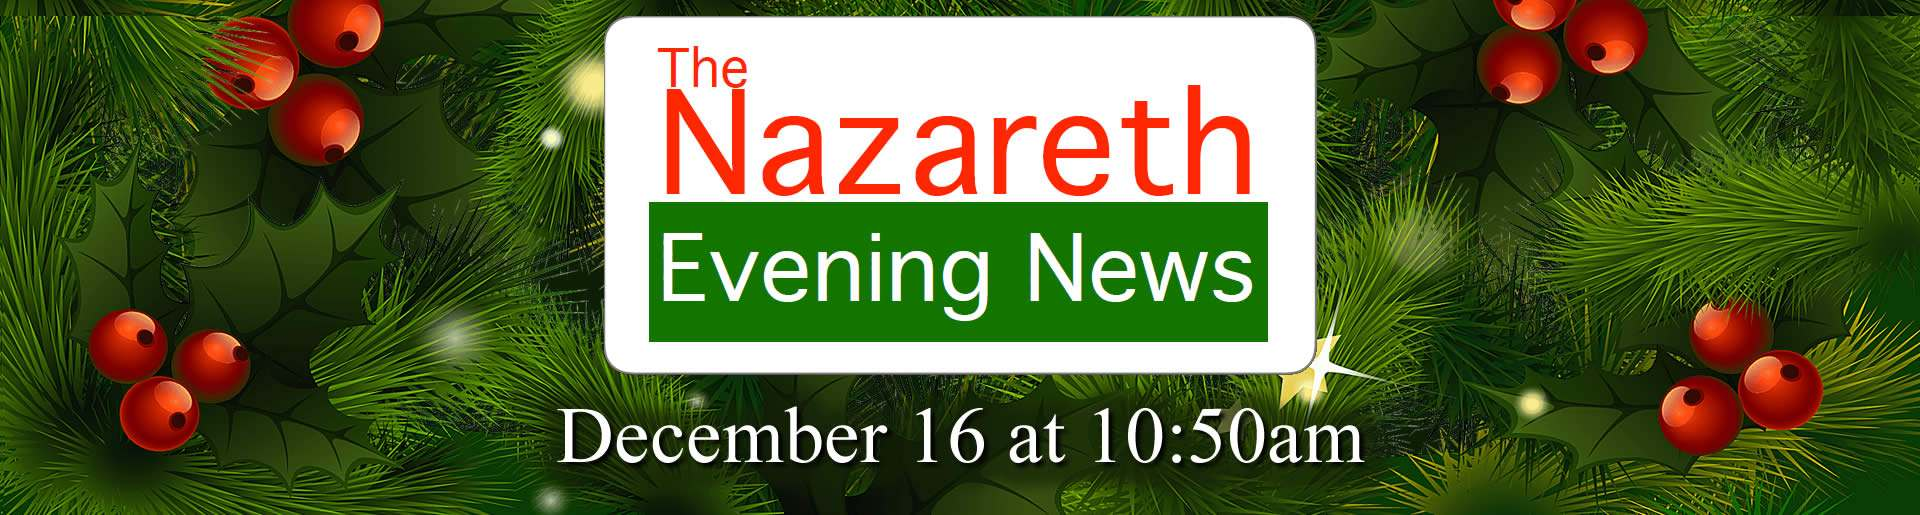 nazareth-evening-news-2018-slider